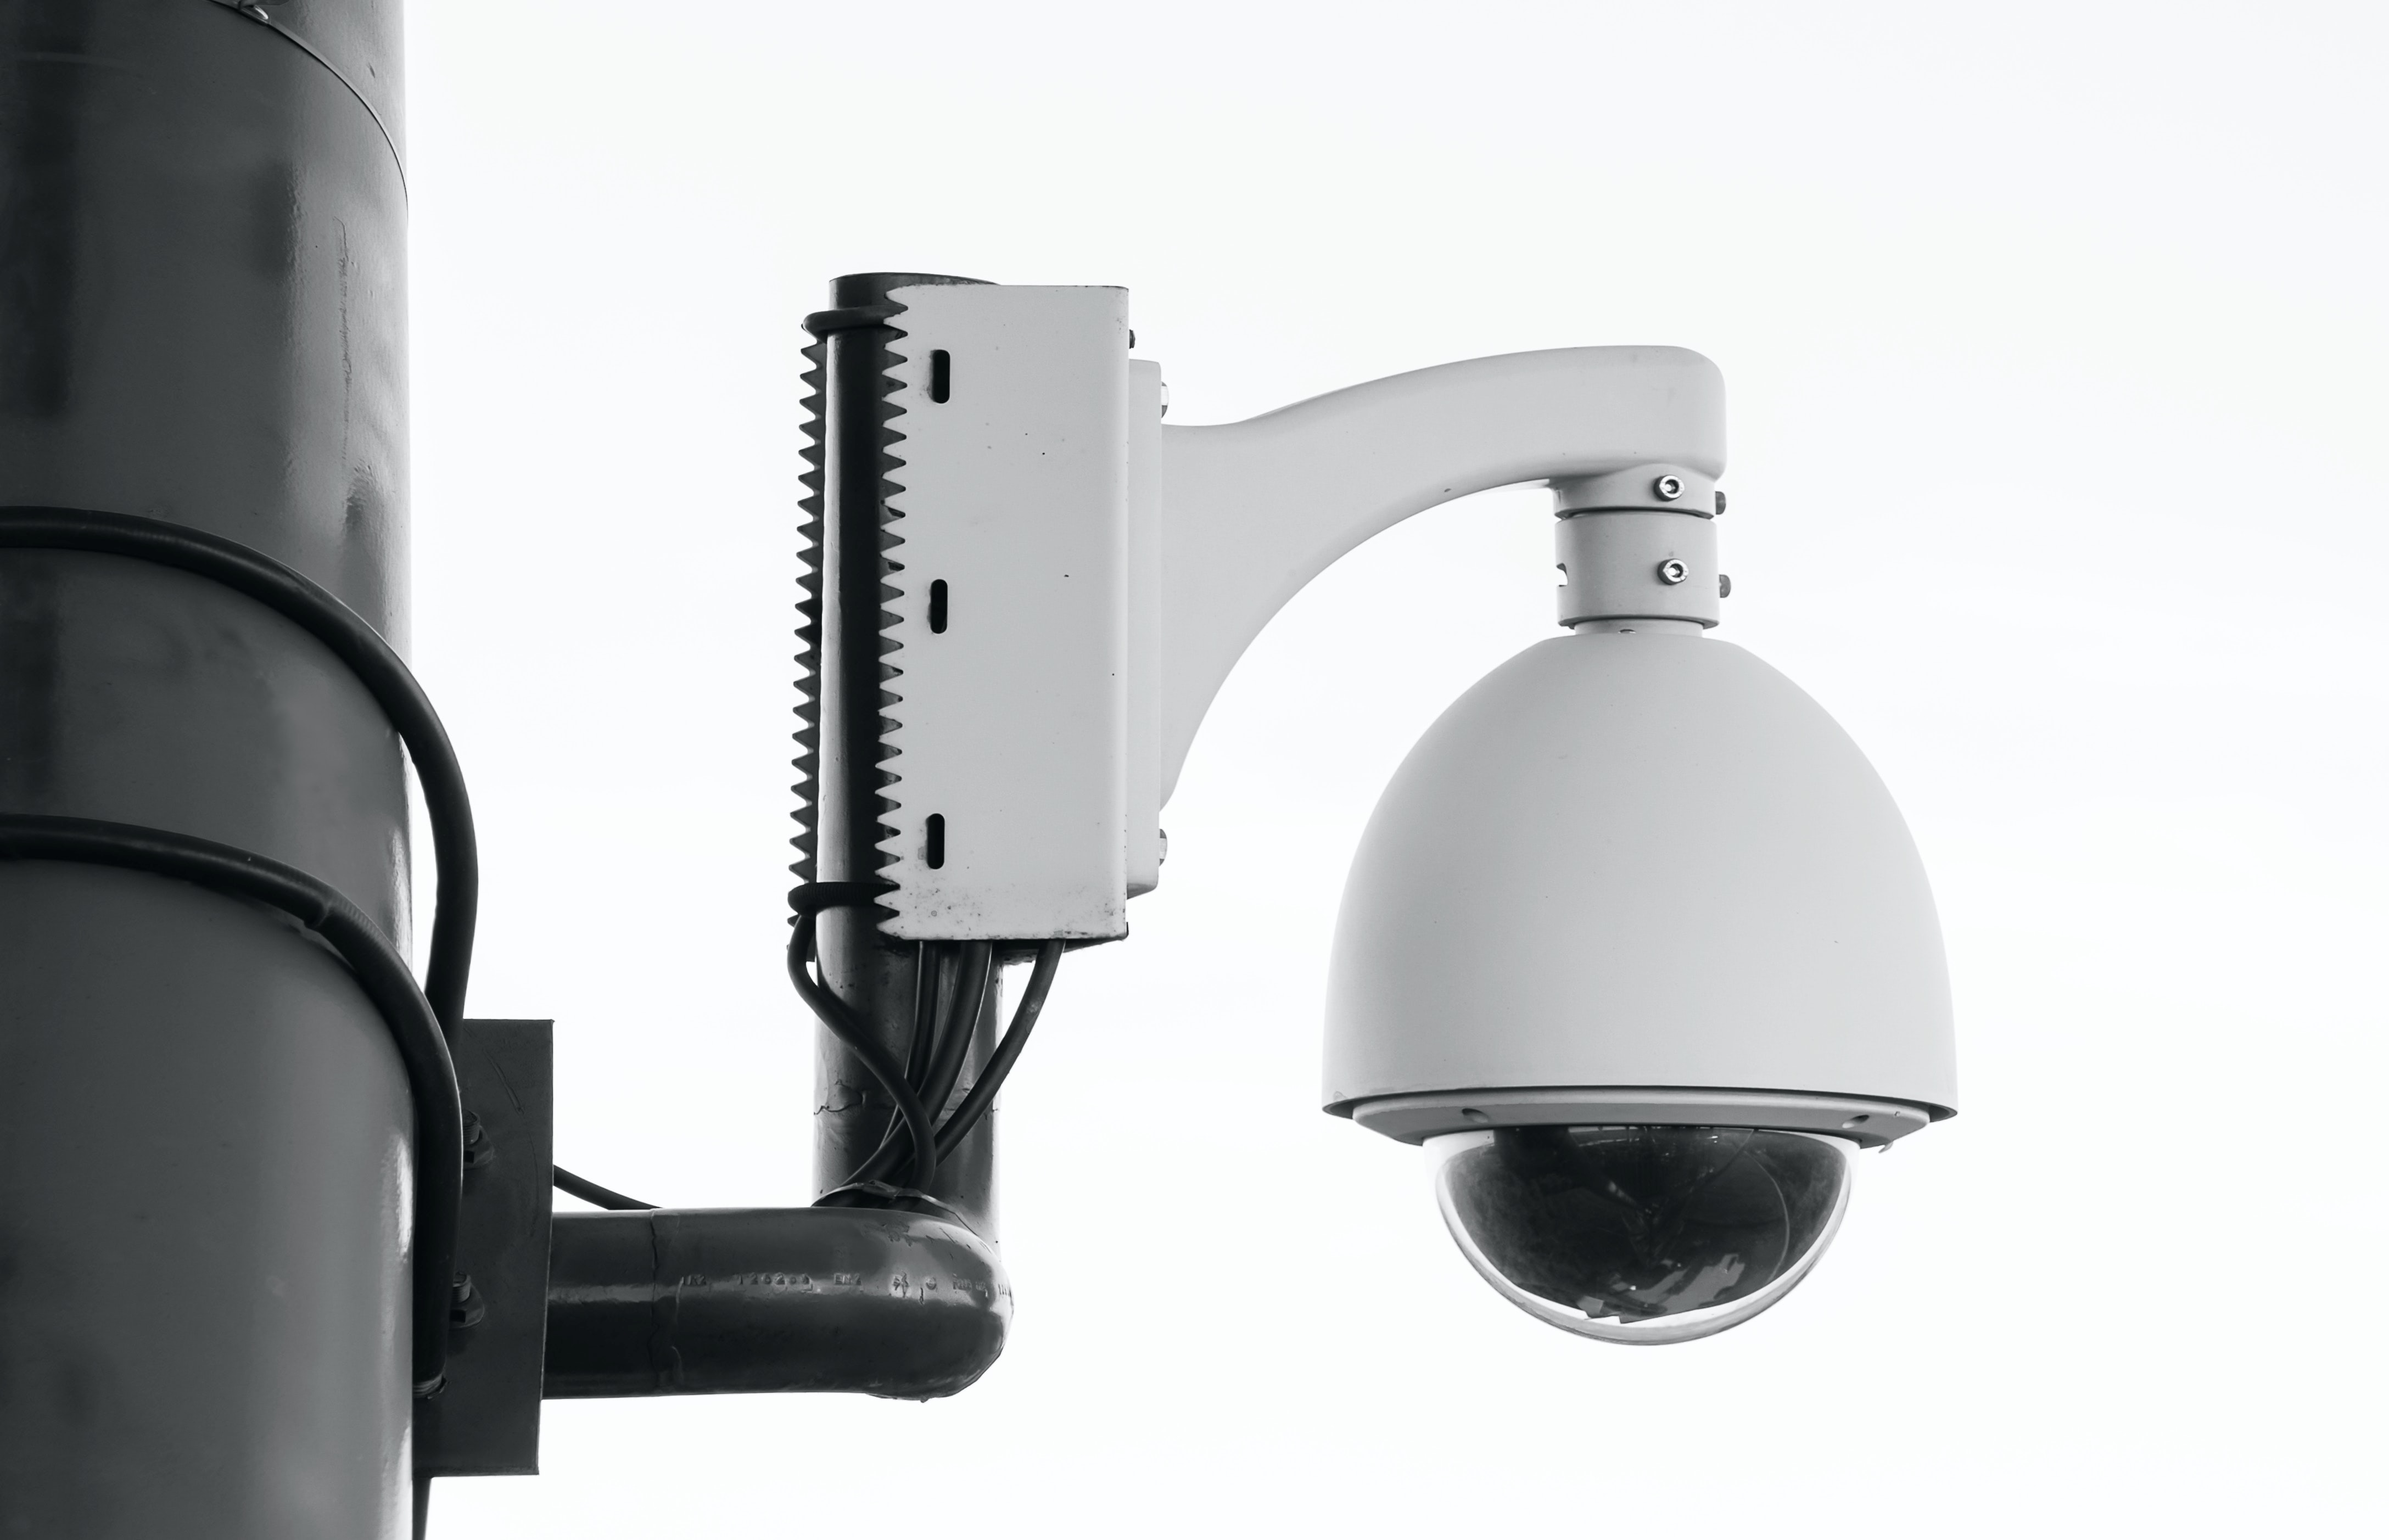 The Best Security Cameras for Your Home